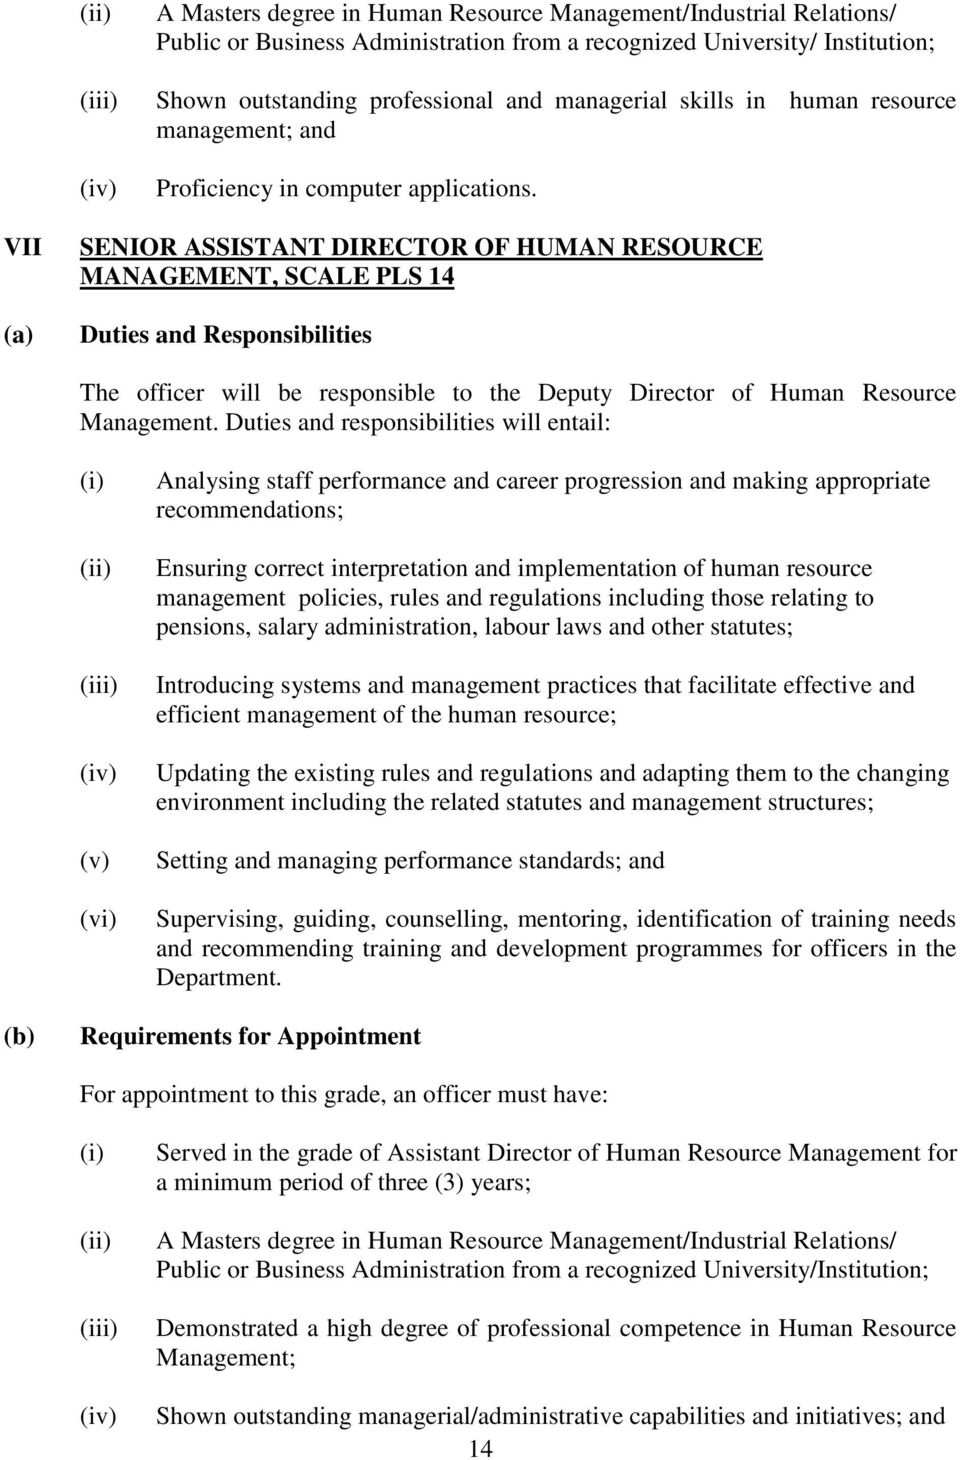 VII SENIOR ASSISTANT DIRECTOR OF HUMAN RESOURCE MANAGEMENT, SCALE PLS 14 The officer will be responsible to the Deputy Director of Human Resource Management.